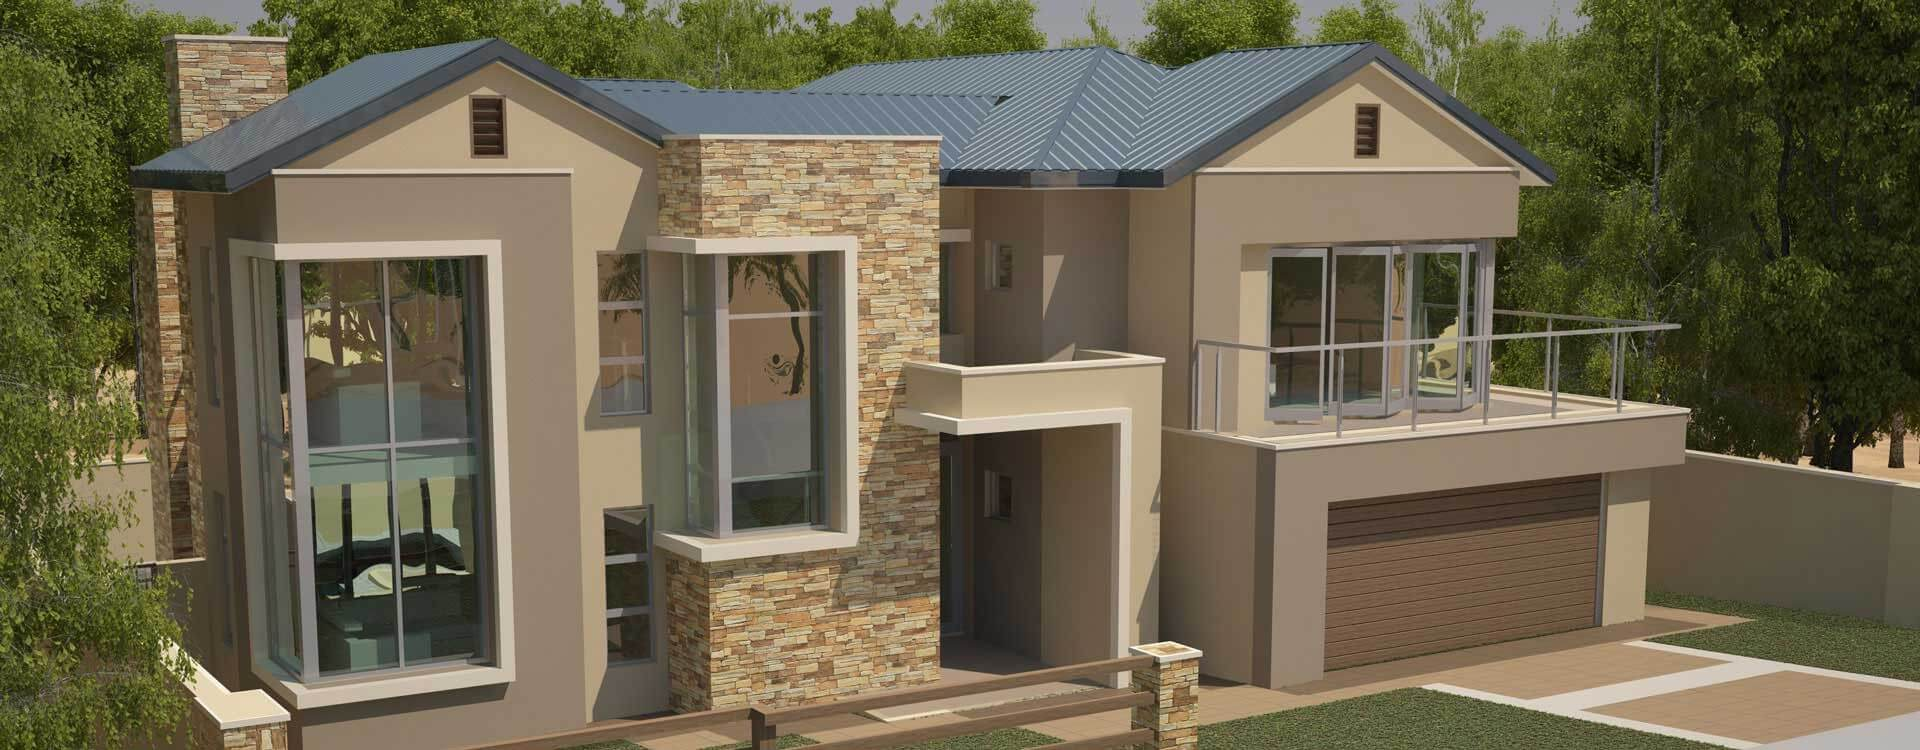 Modern house designs pictures south africa